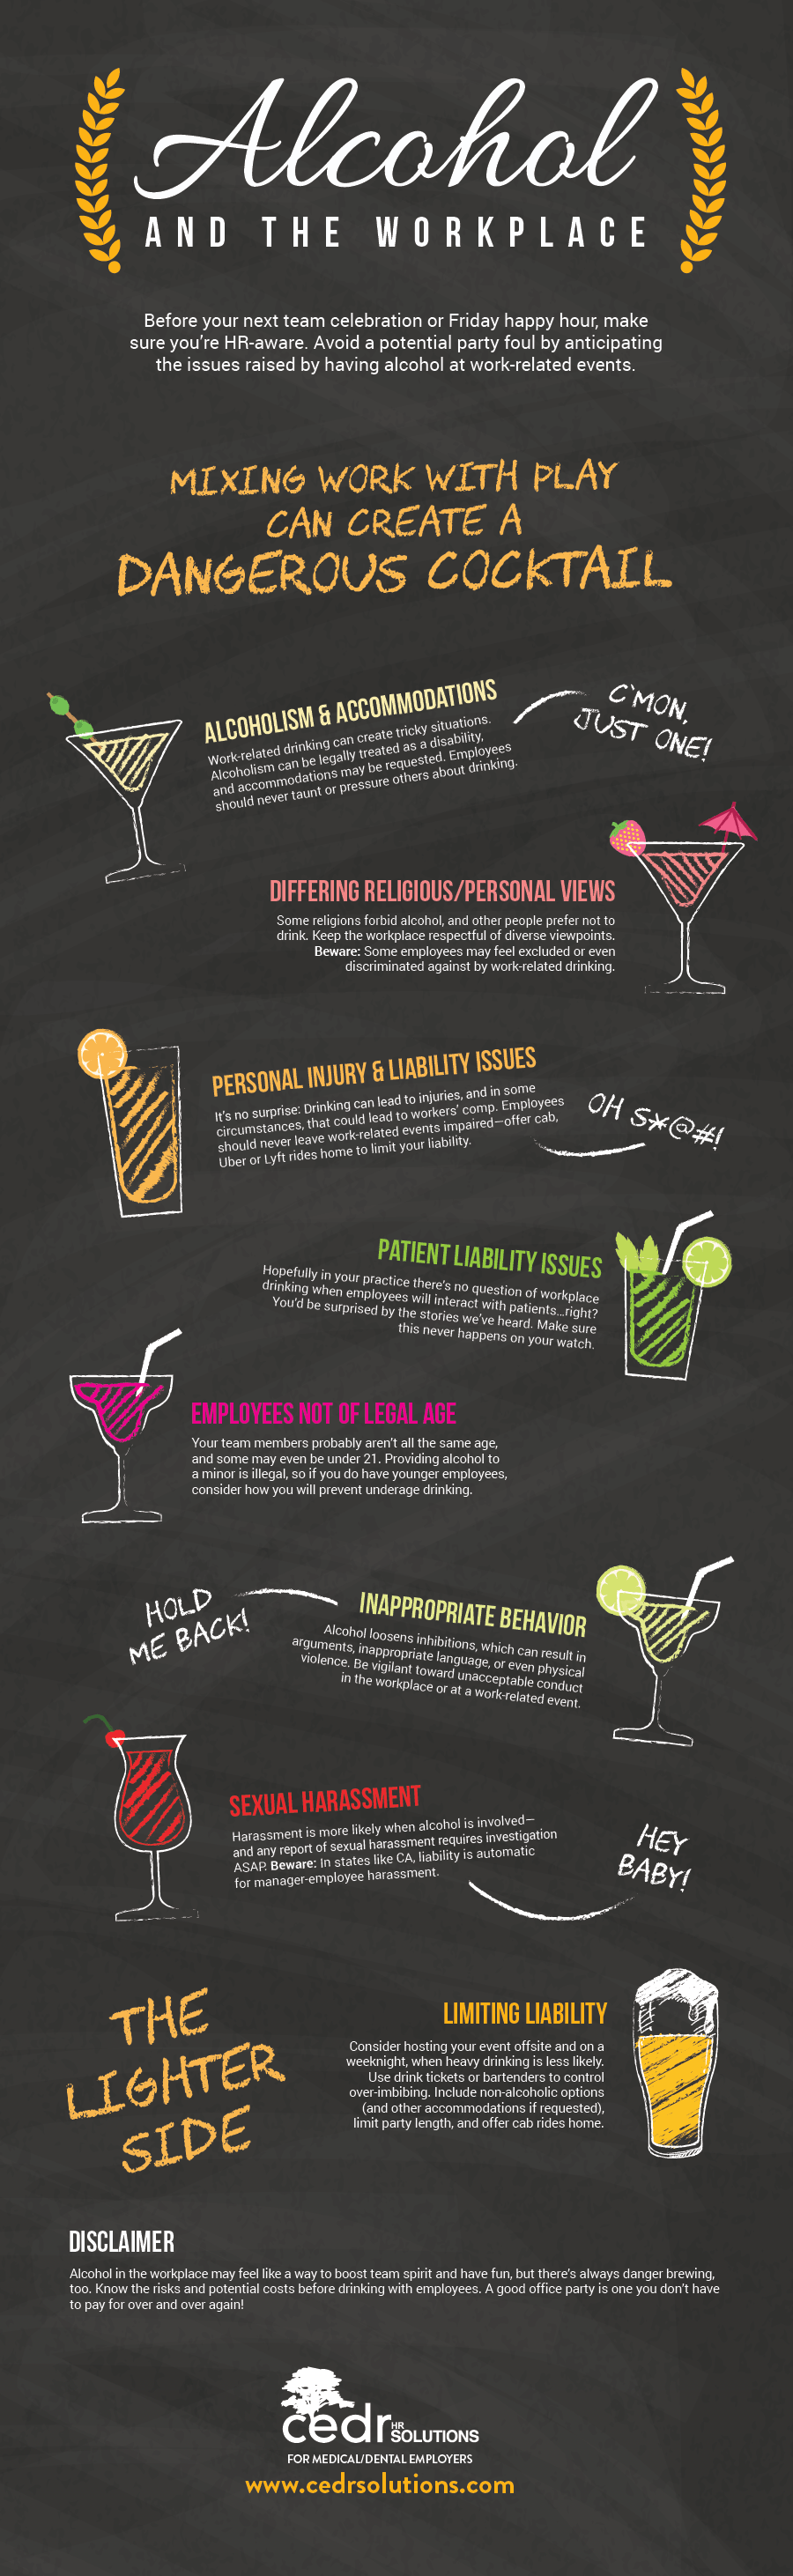 Happy Hour Drinking Games